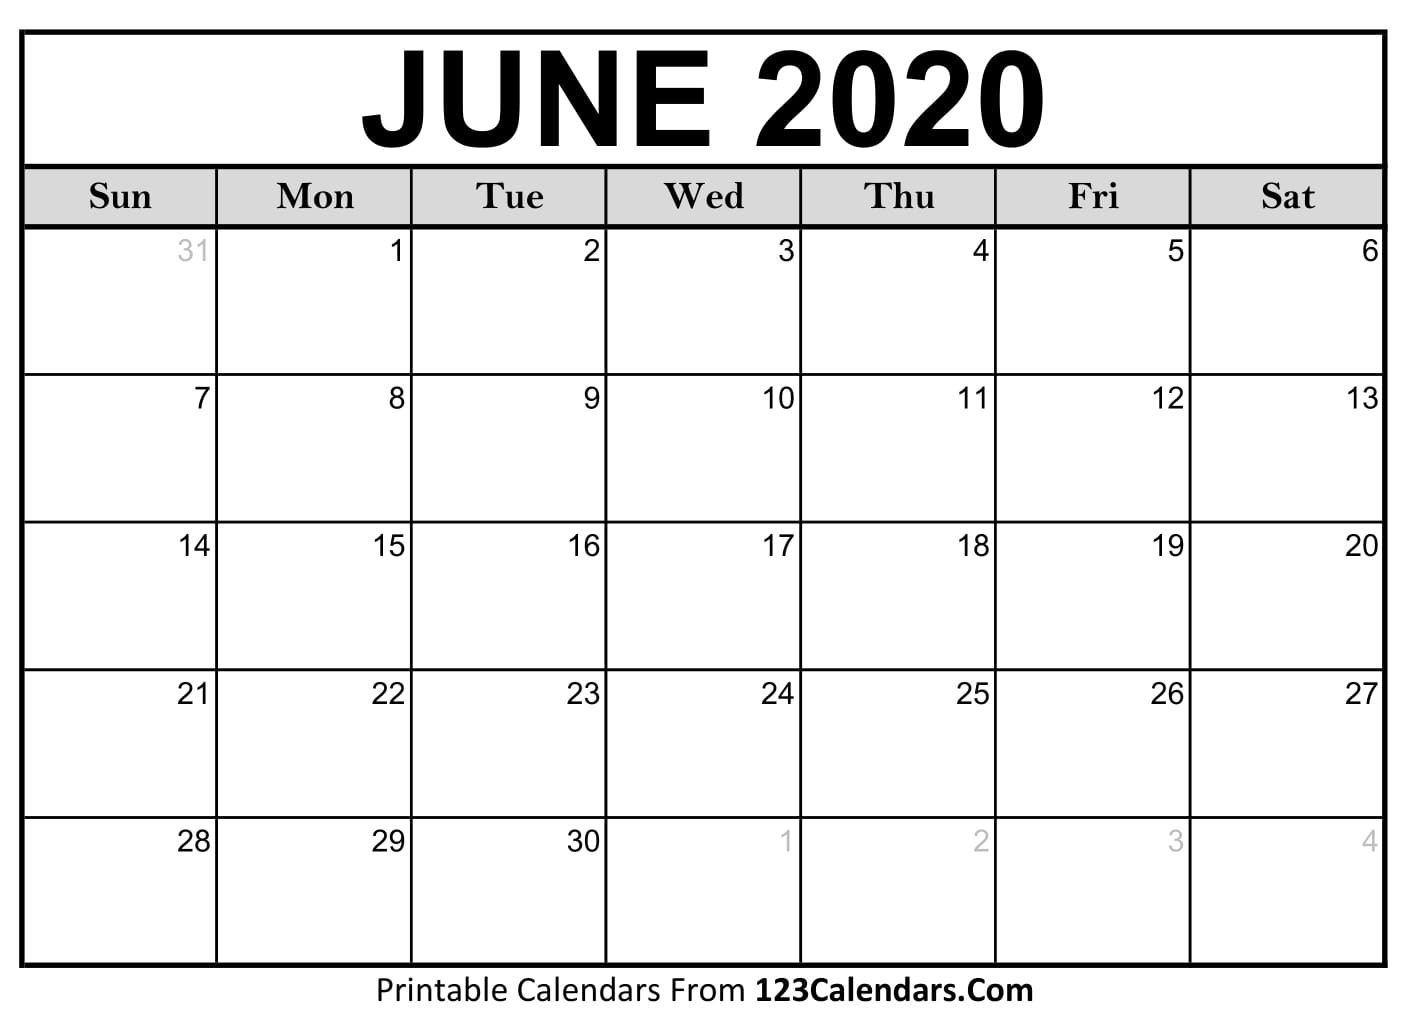 June 2020 Printable Calendar | 123Calendars-Blank Calendar 2020 June July August